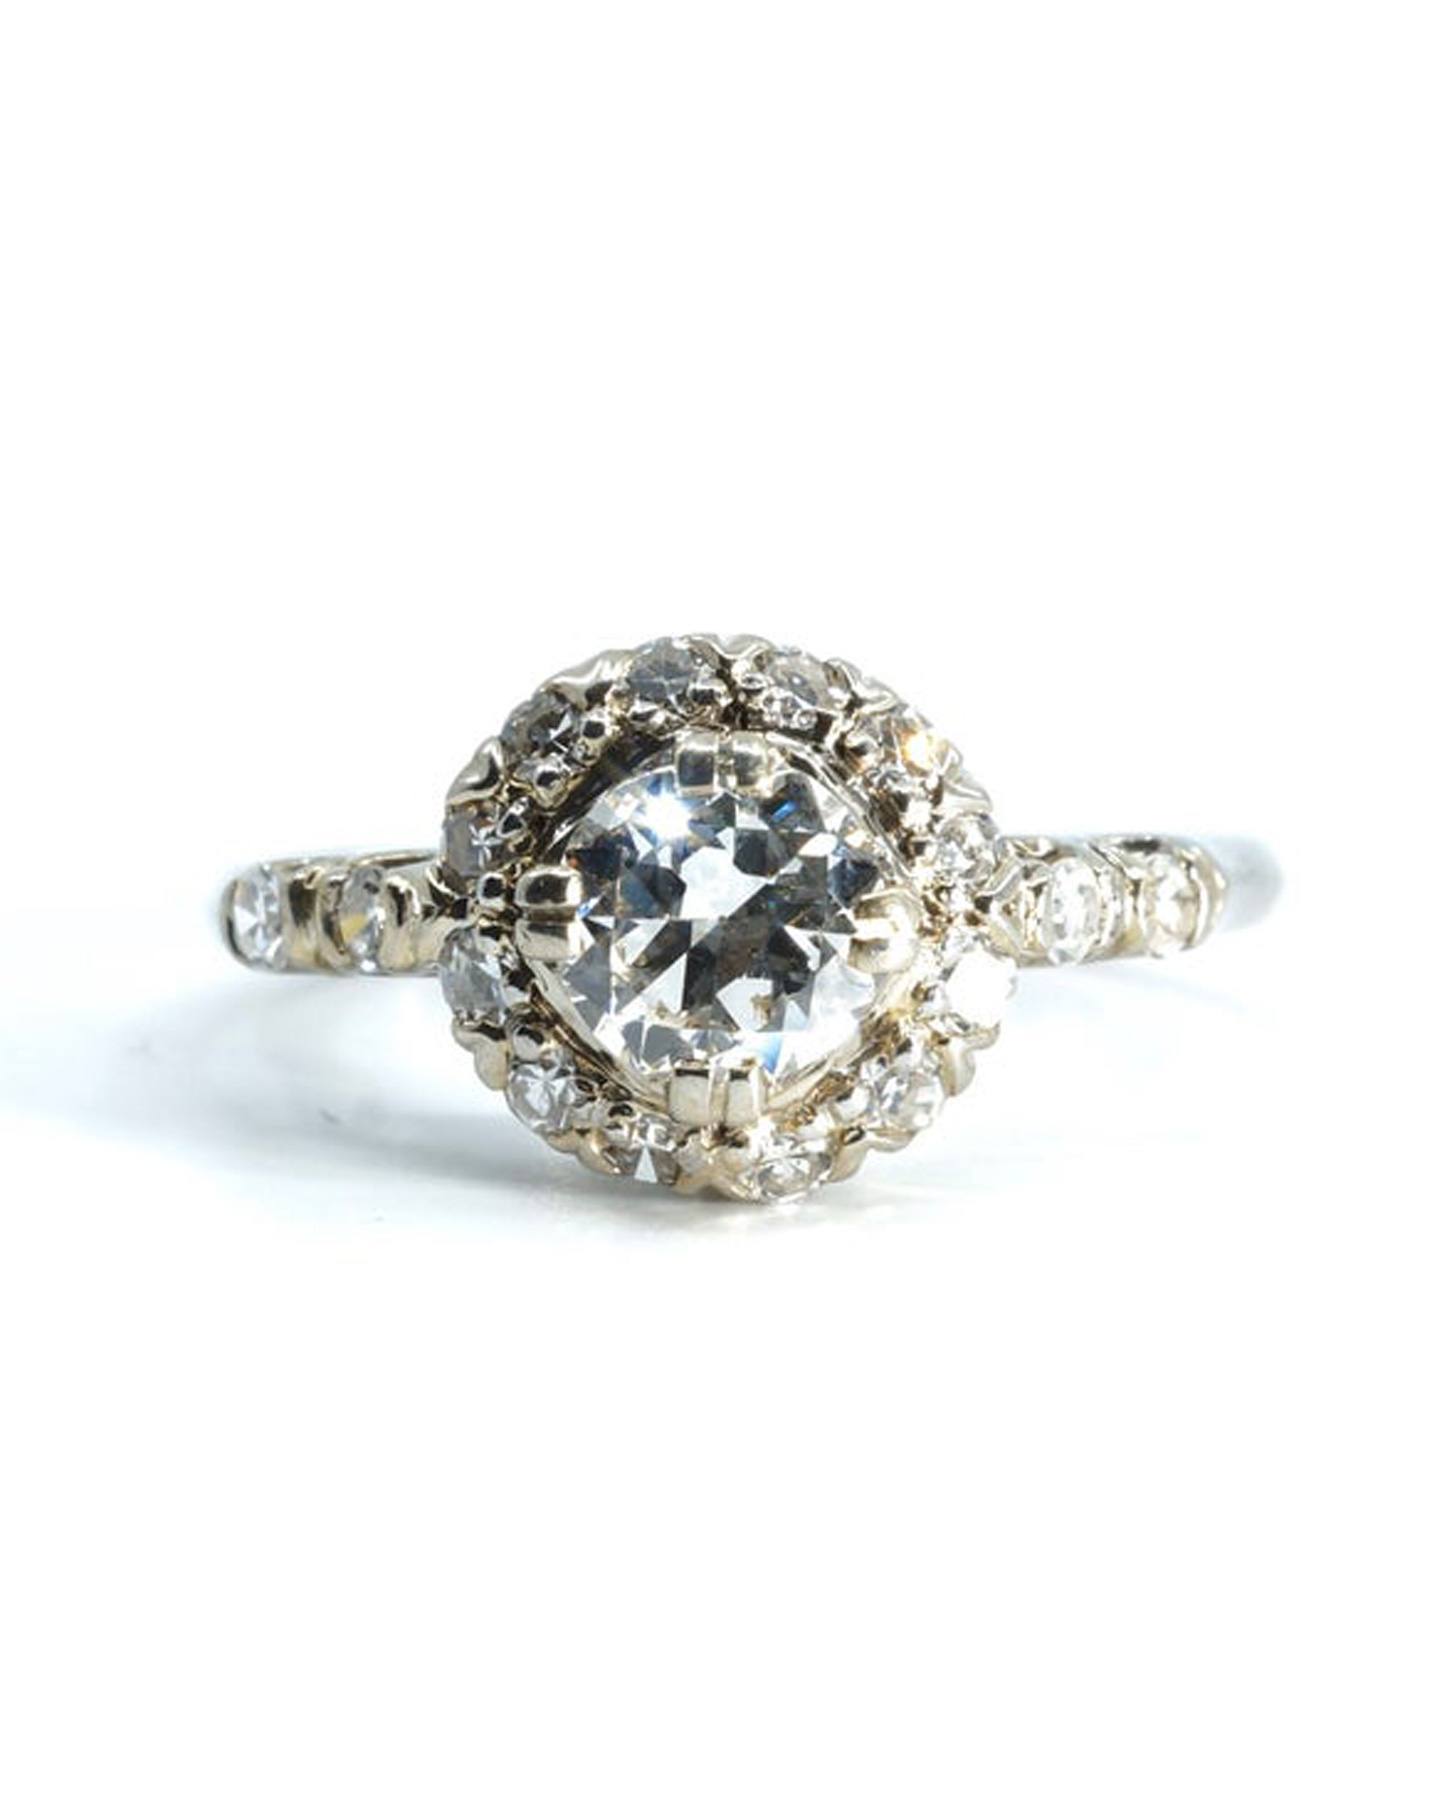 Etsy 2020 Wedding Trends: Vintage wedding and engagement rings